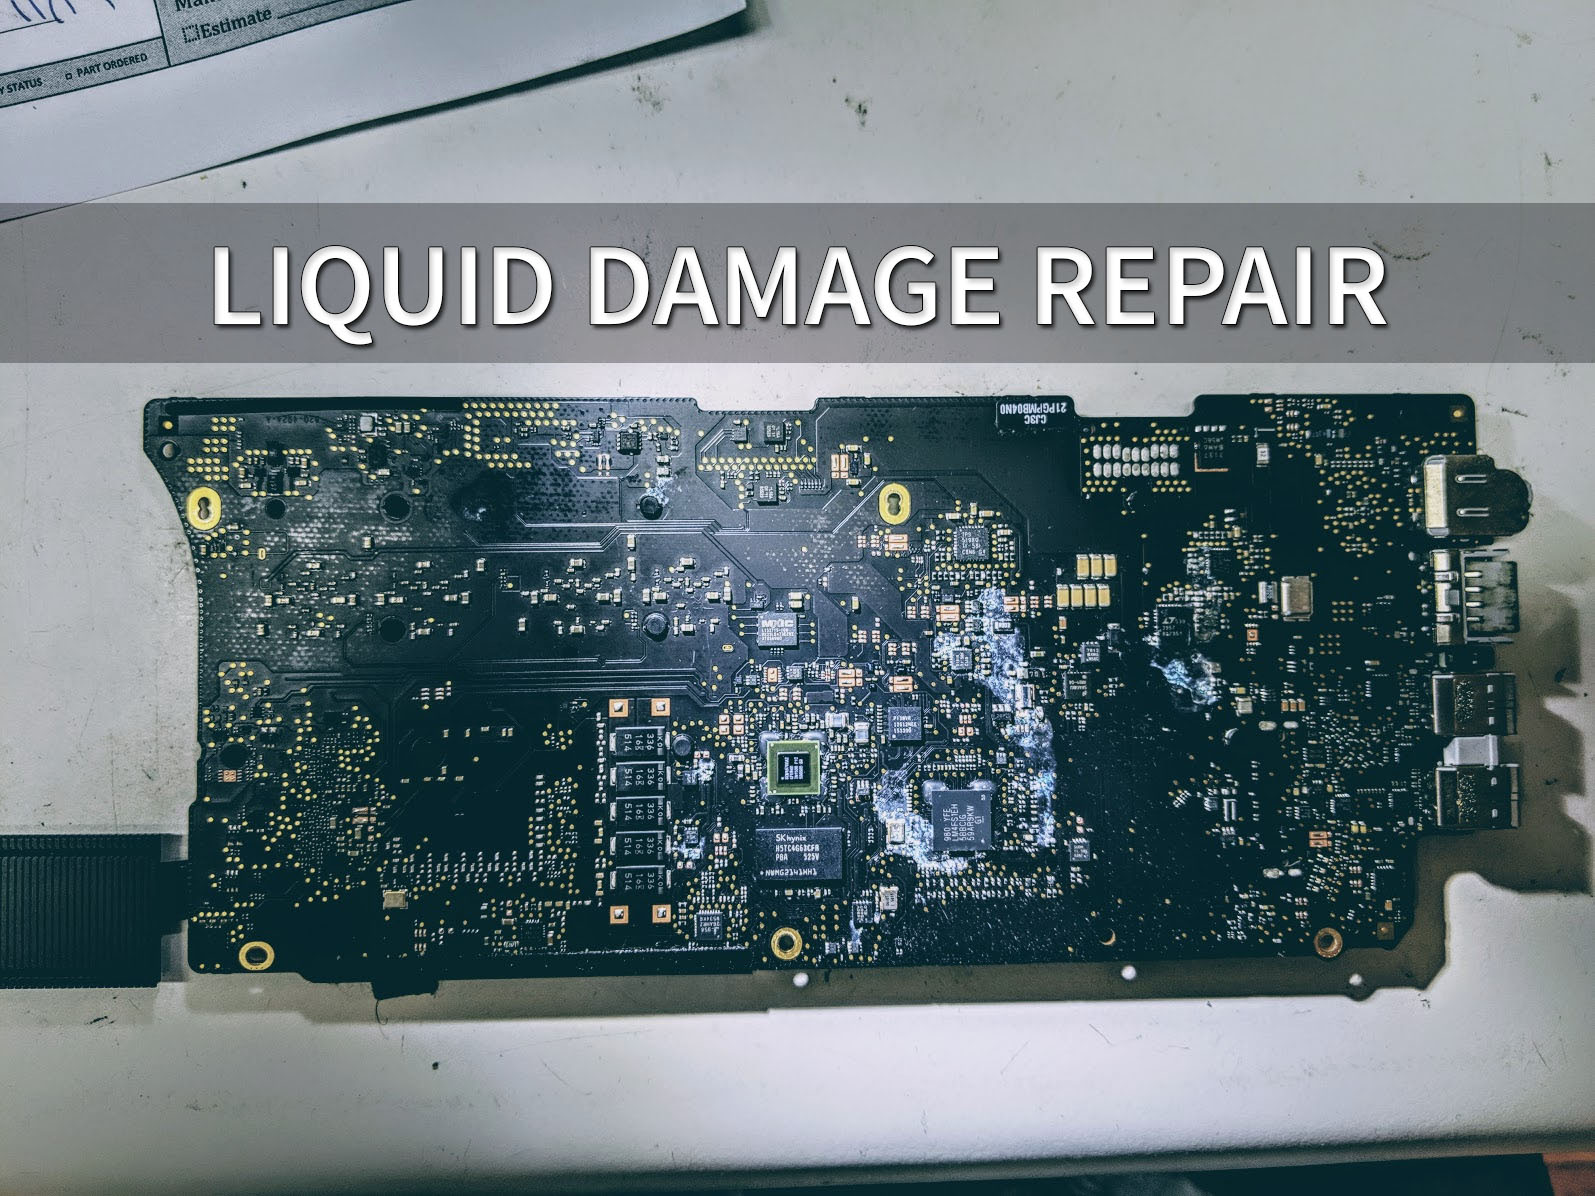 Liquid Damage Repair